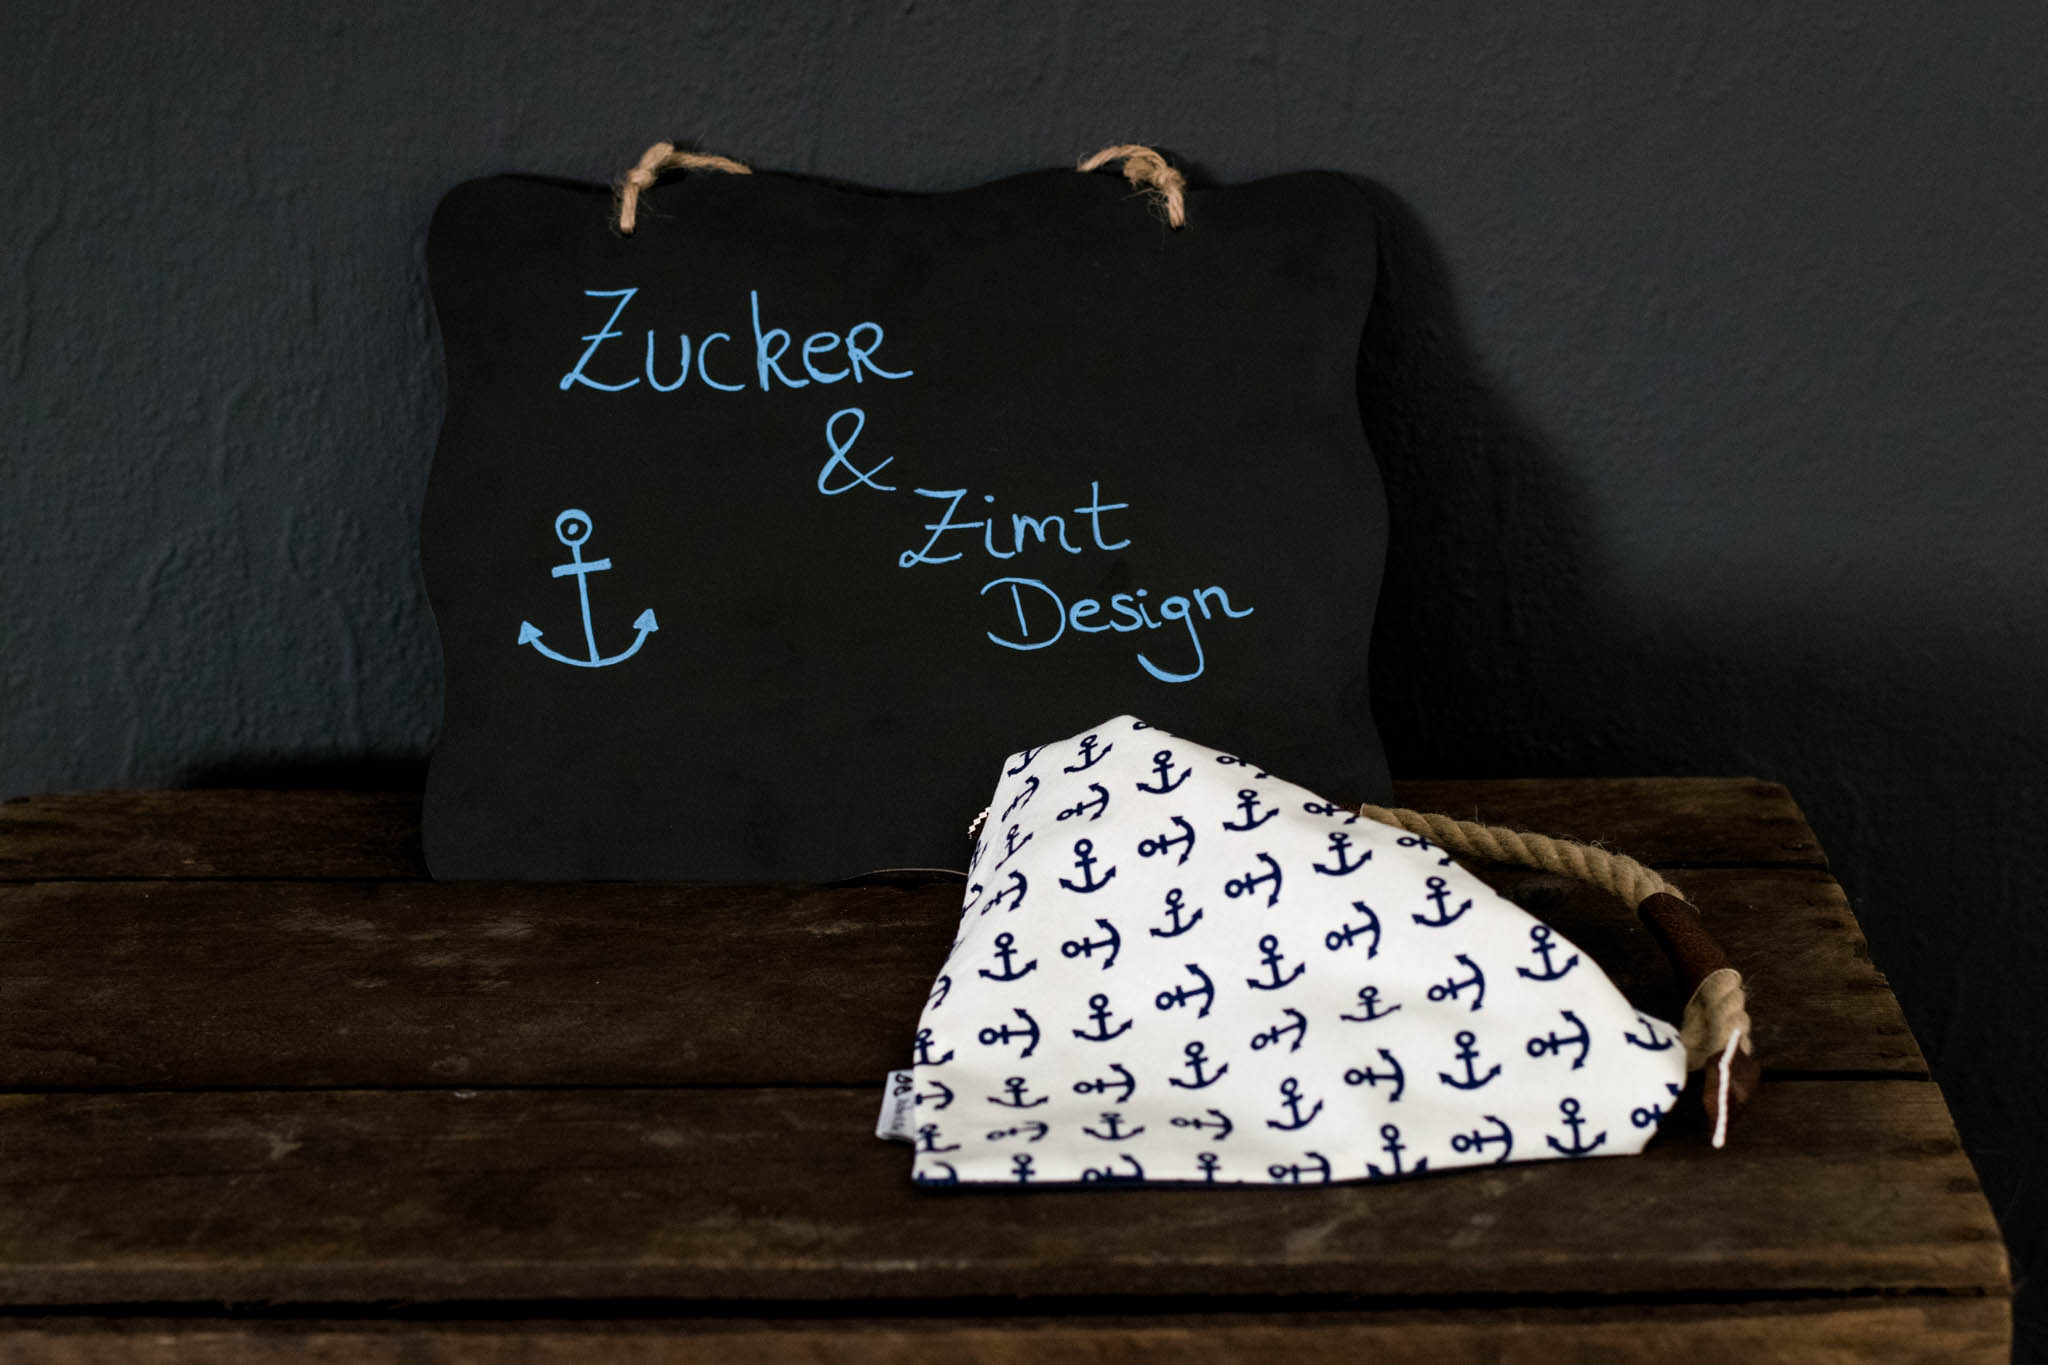 blogil ums gewinnspiel tag 6 sponsor zucker zimt design moe me. Black Bedroom Furniture Sets. Home Design Ideas